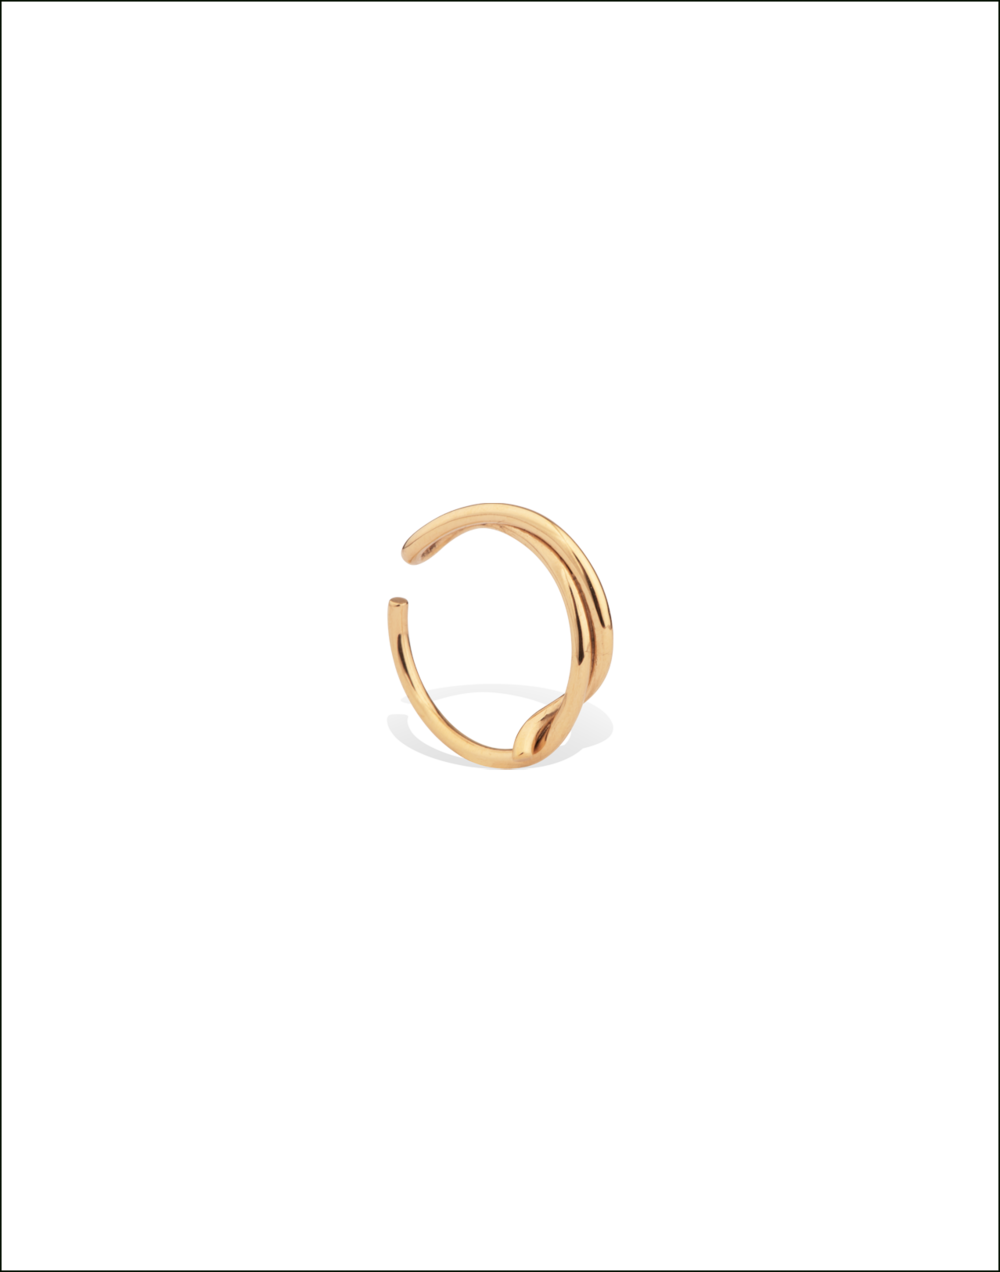 Completedworks-Ear-Cuff-Gold-Vermeil-Statue-of-a-Couple-1-1.png